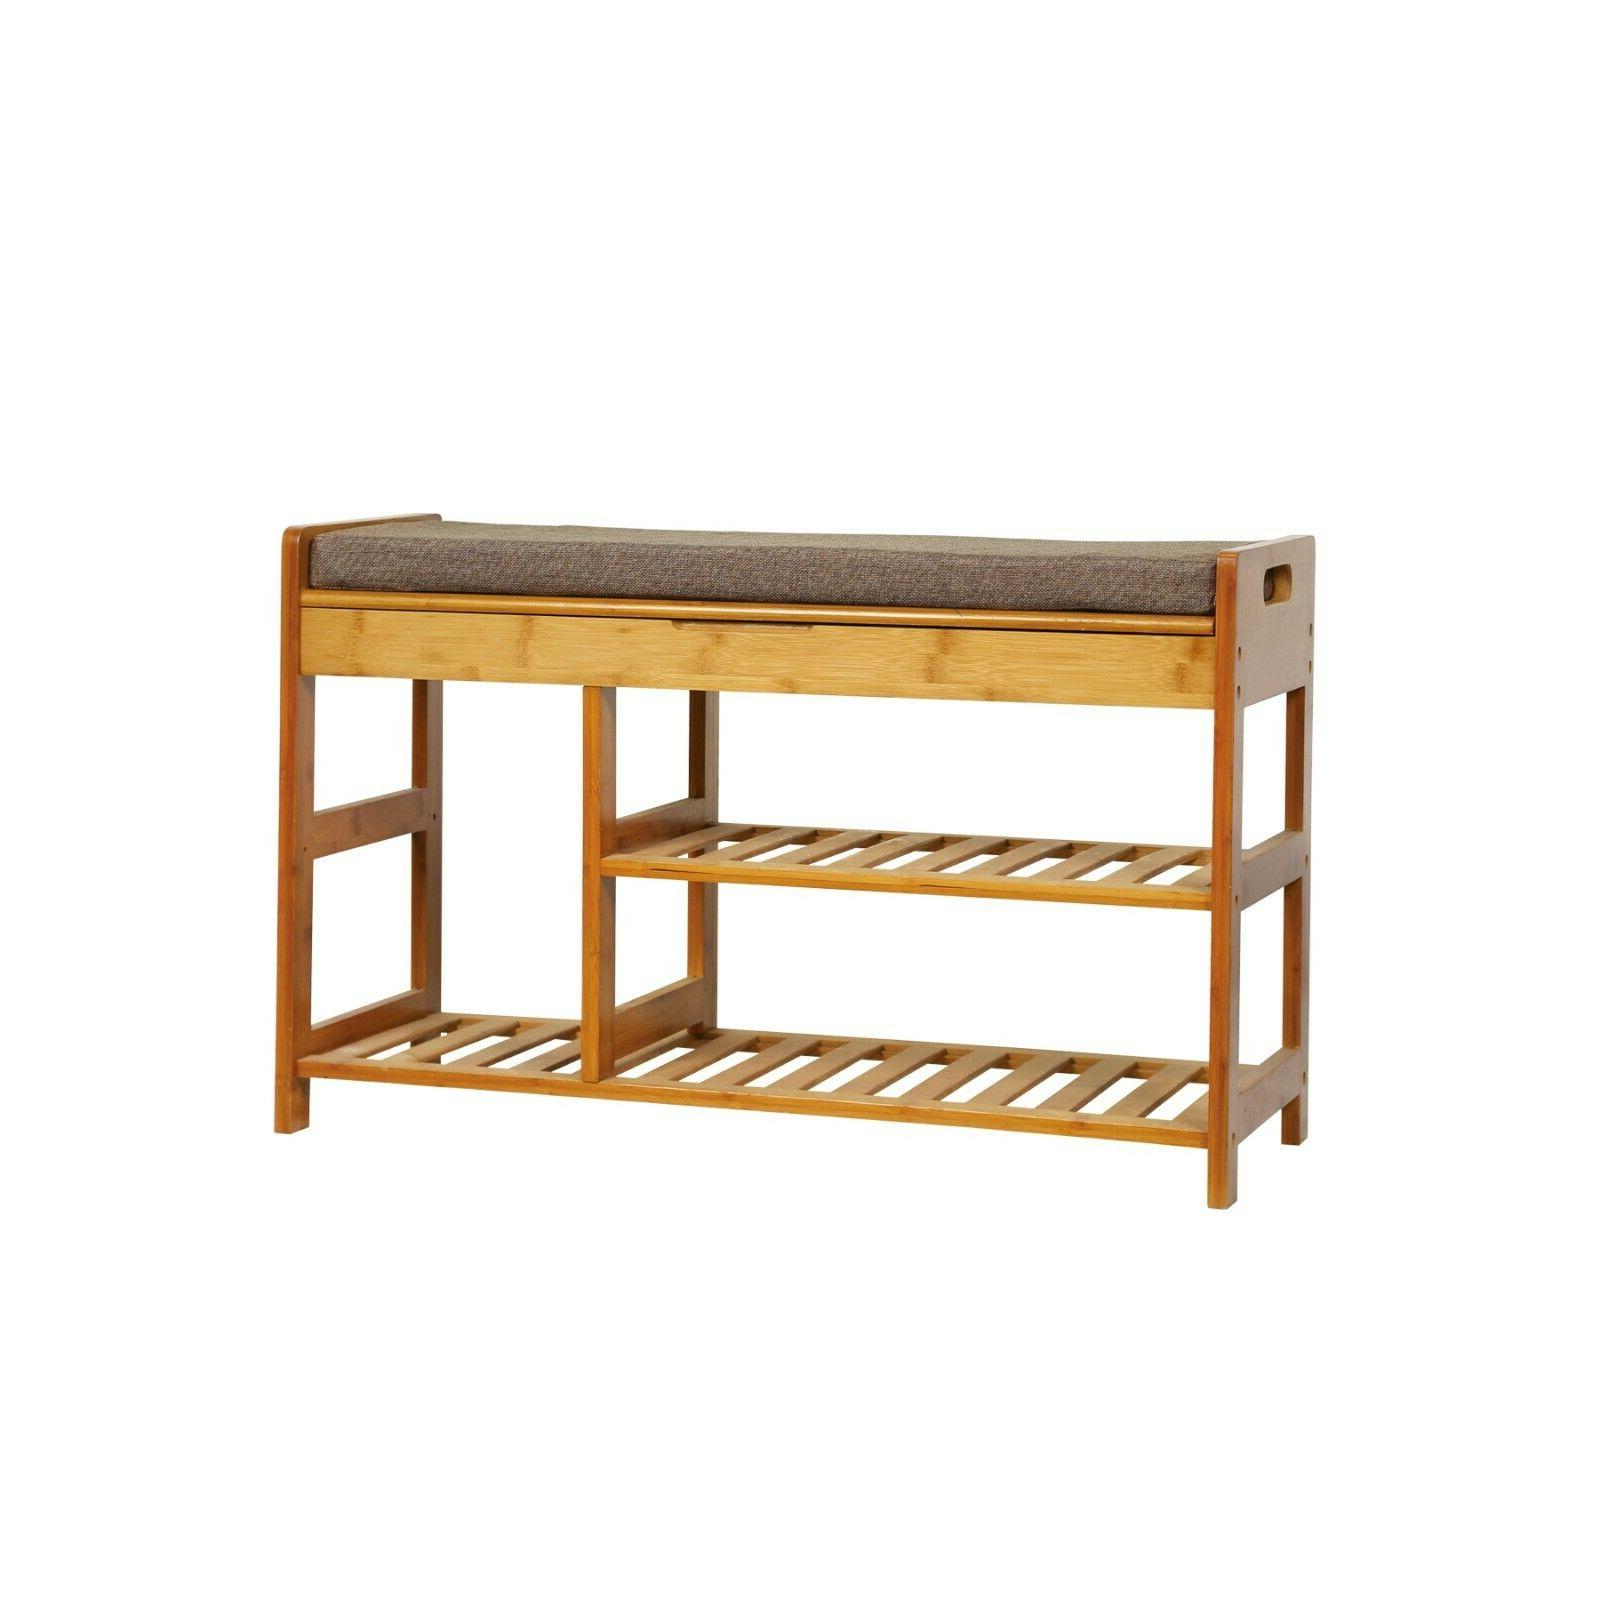 c and ahome bamboo shoe rack bench